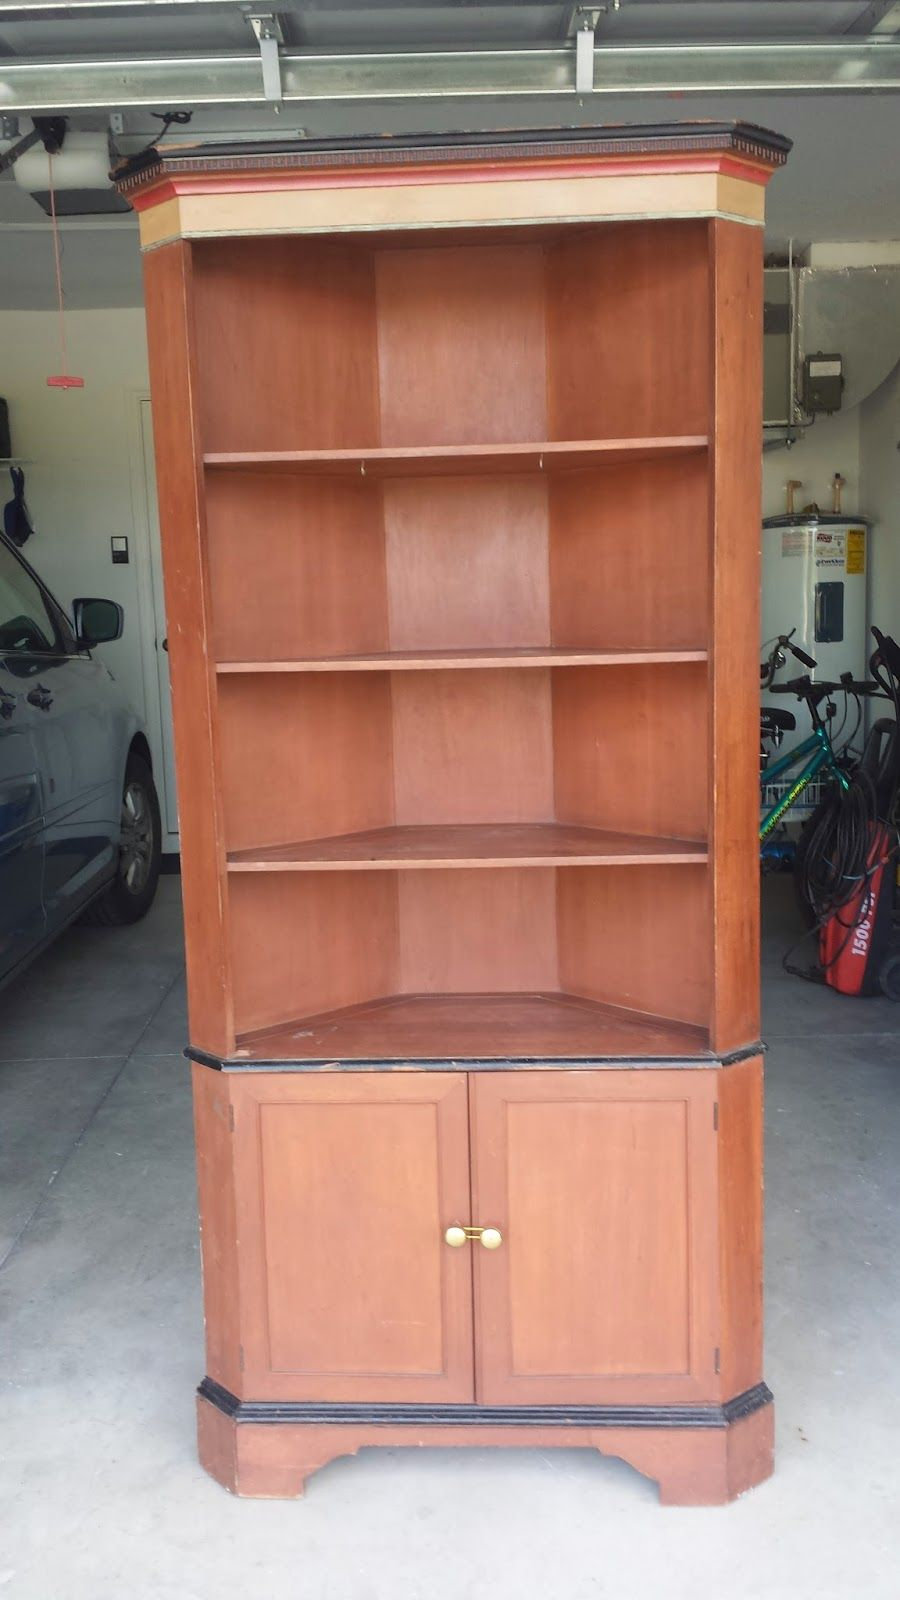 Room-inations: Giving a Donated Cabinet New Life